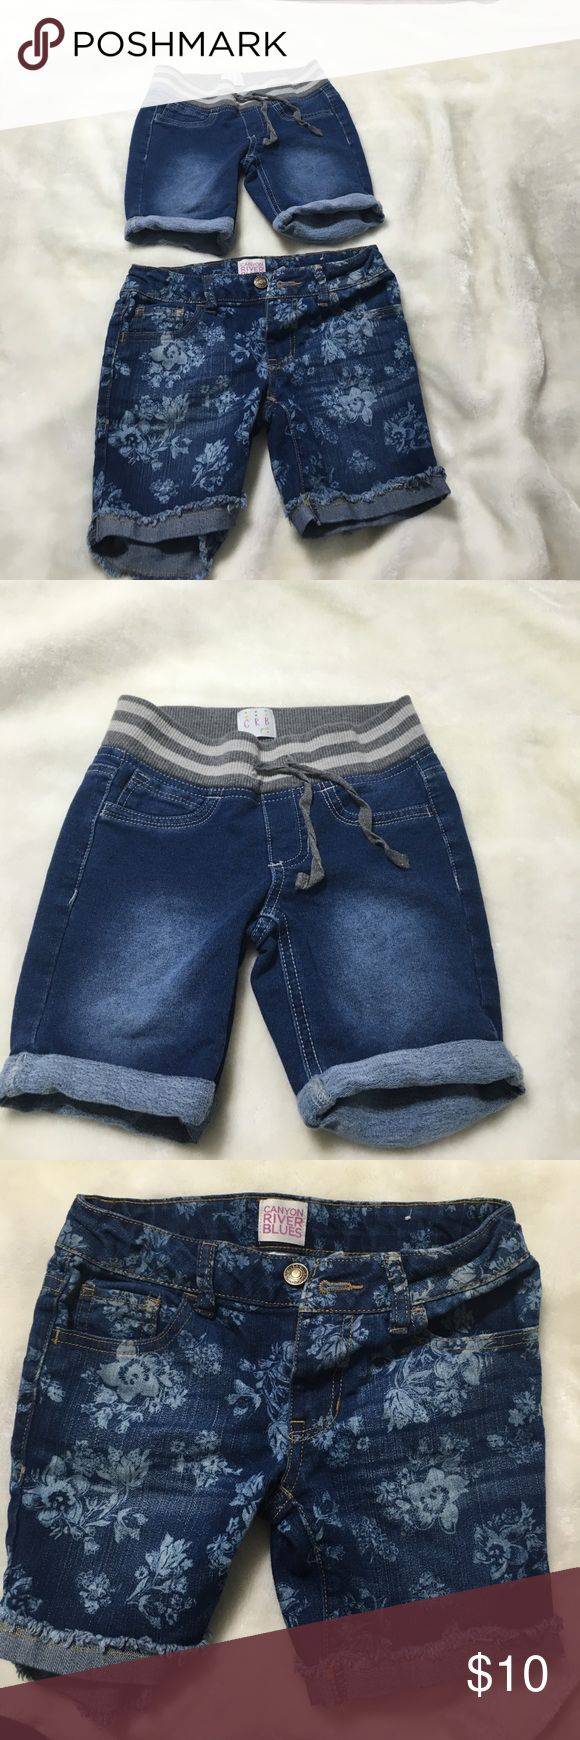 2 Pair of Girls Canyon River Blue Shorts size 7 2 pair of shorts, Canyon River Blues(Sears). Both size 7 Canyon River Blues Bottoms Shorts